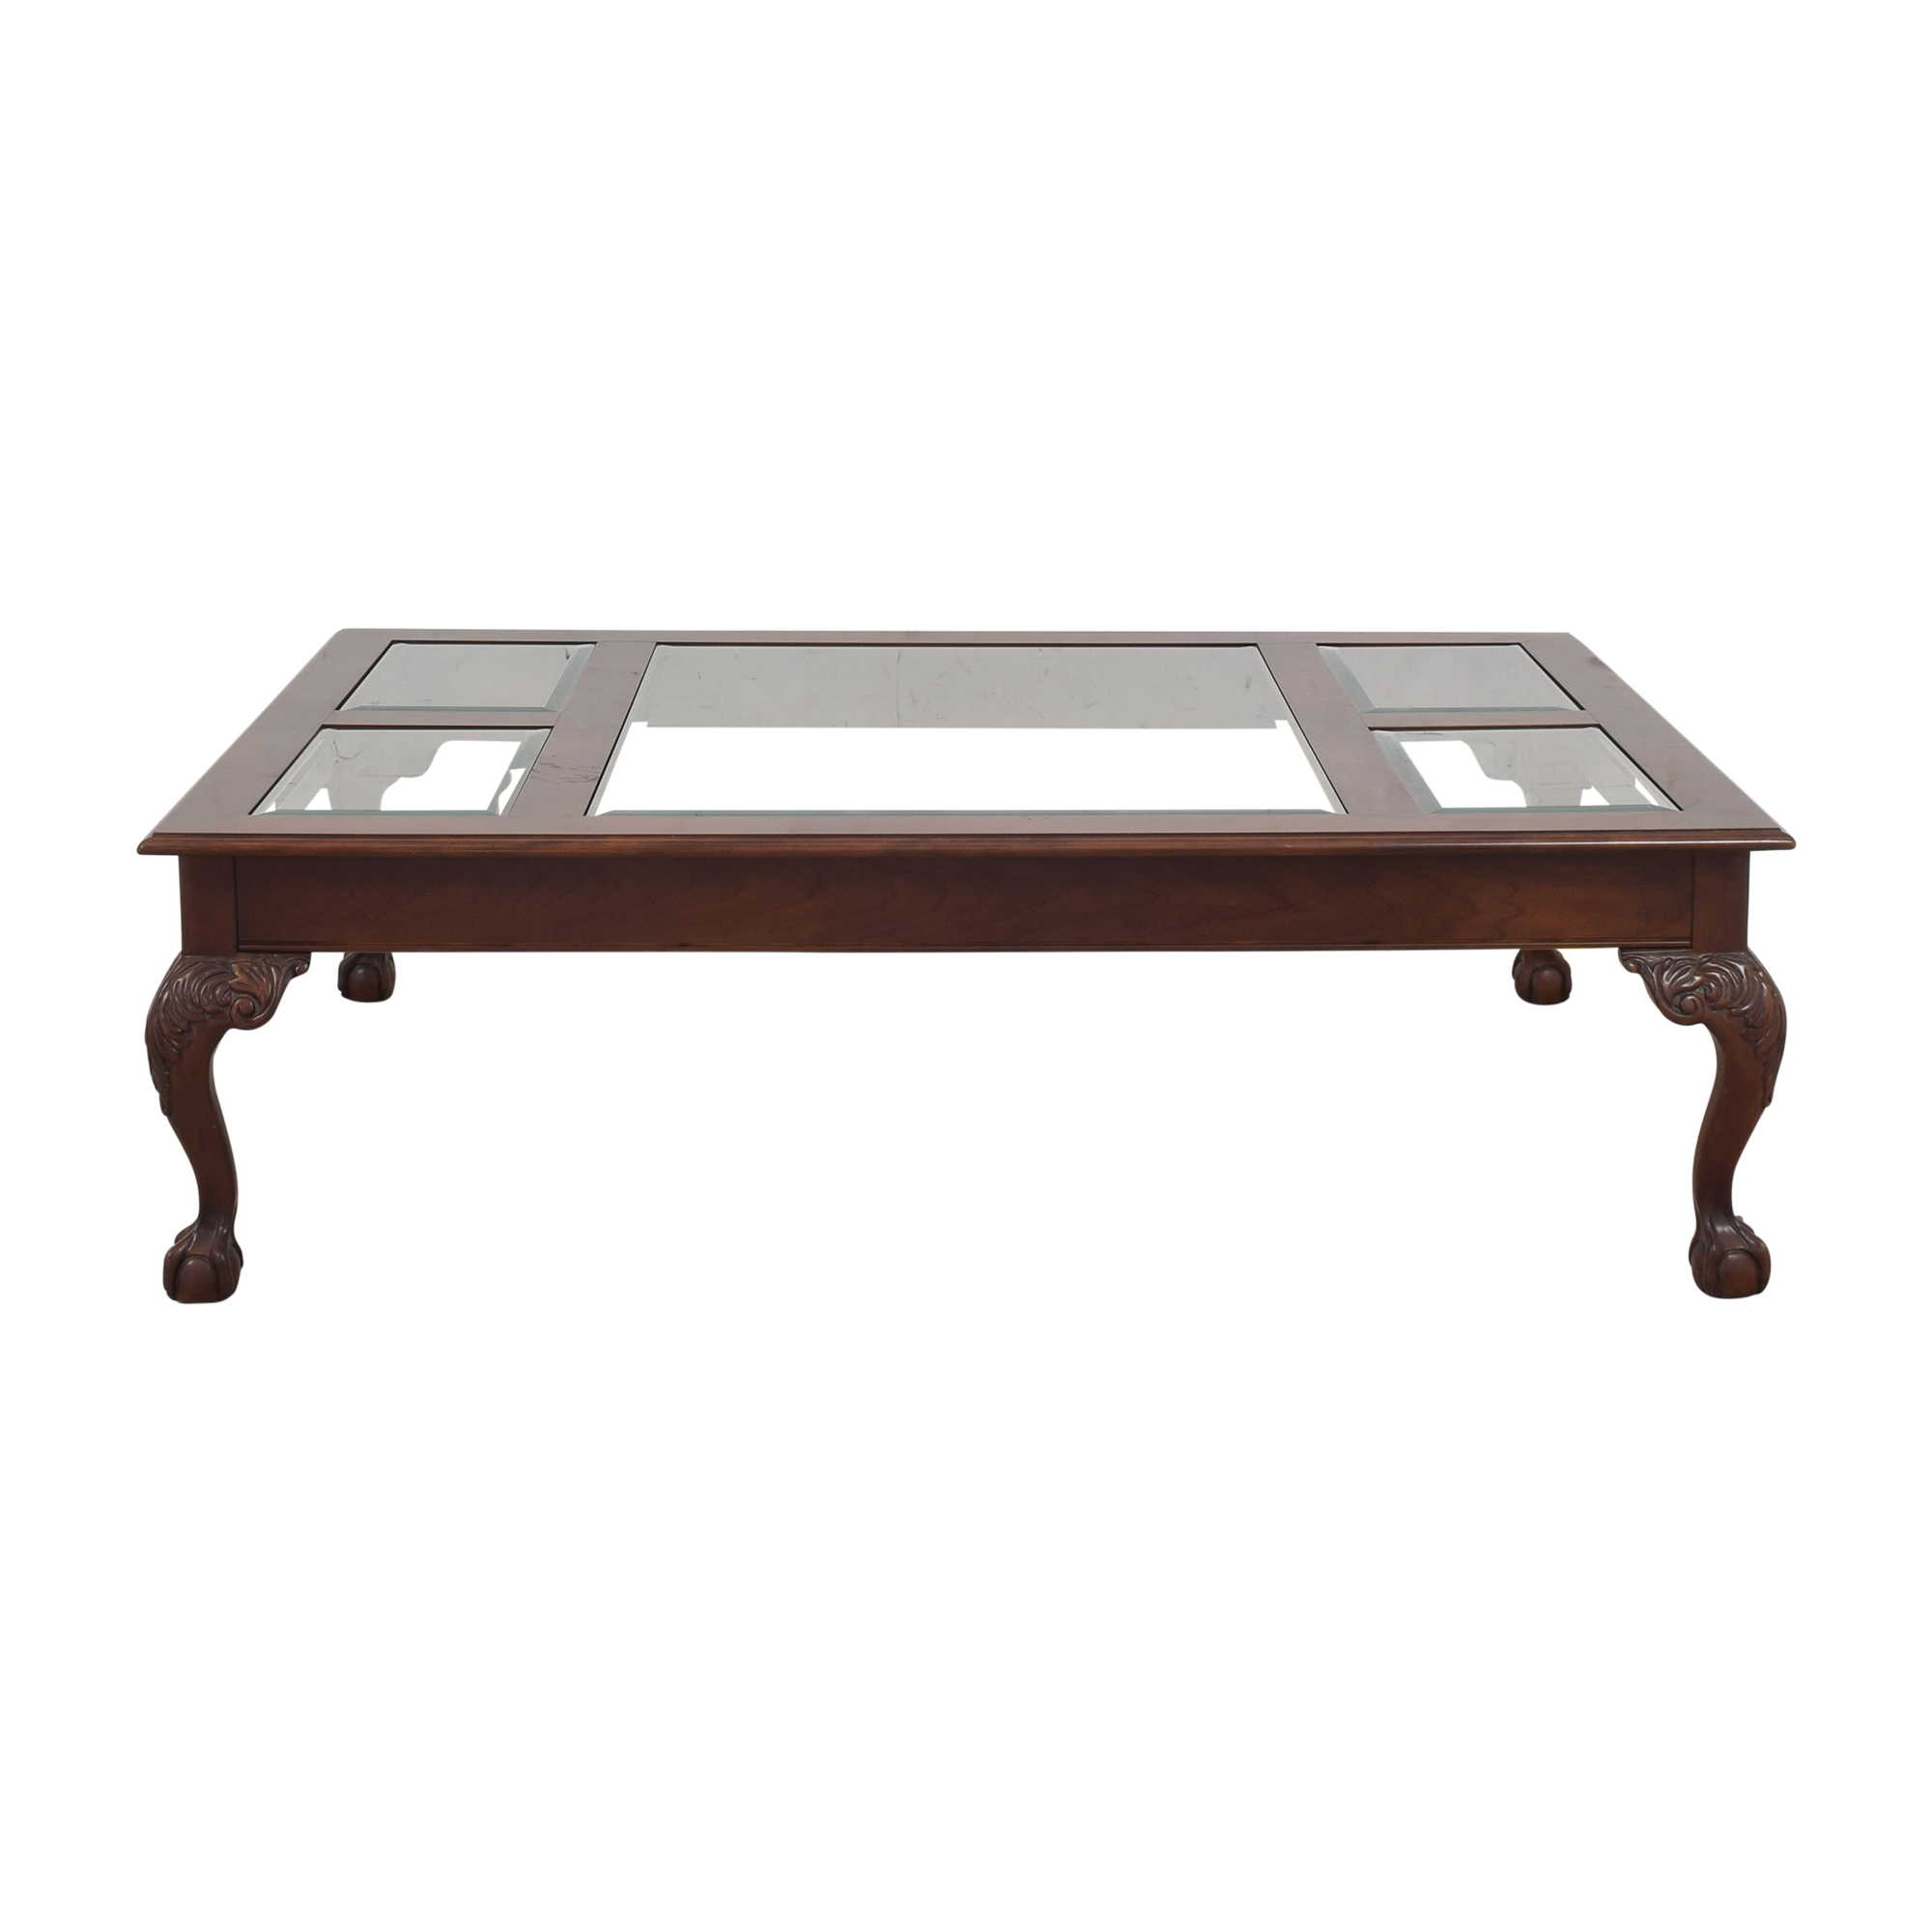 Drexel Heritage Coffee Table / Coffee Tables